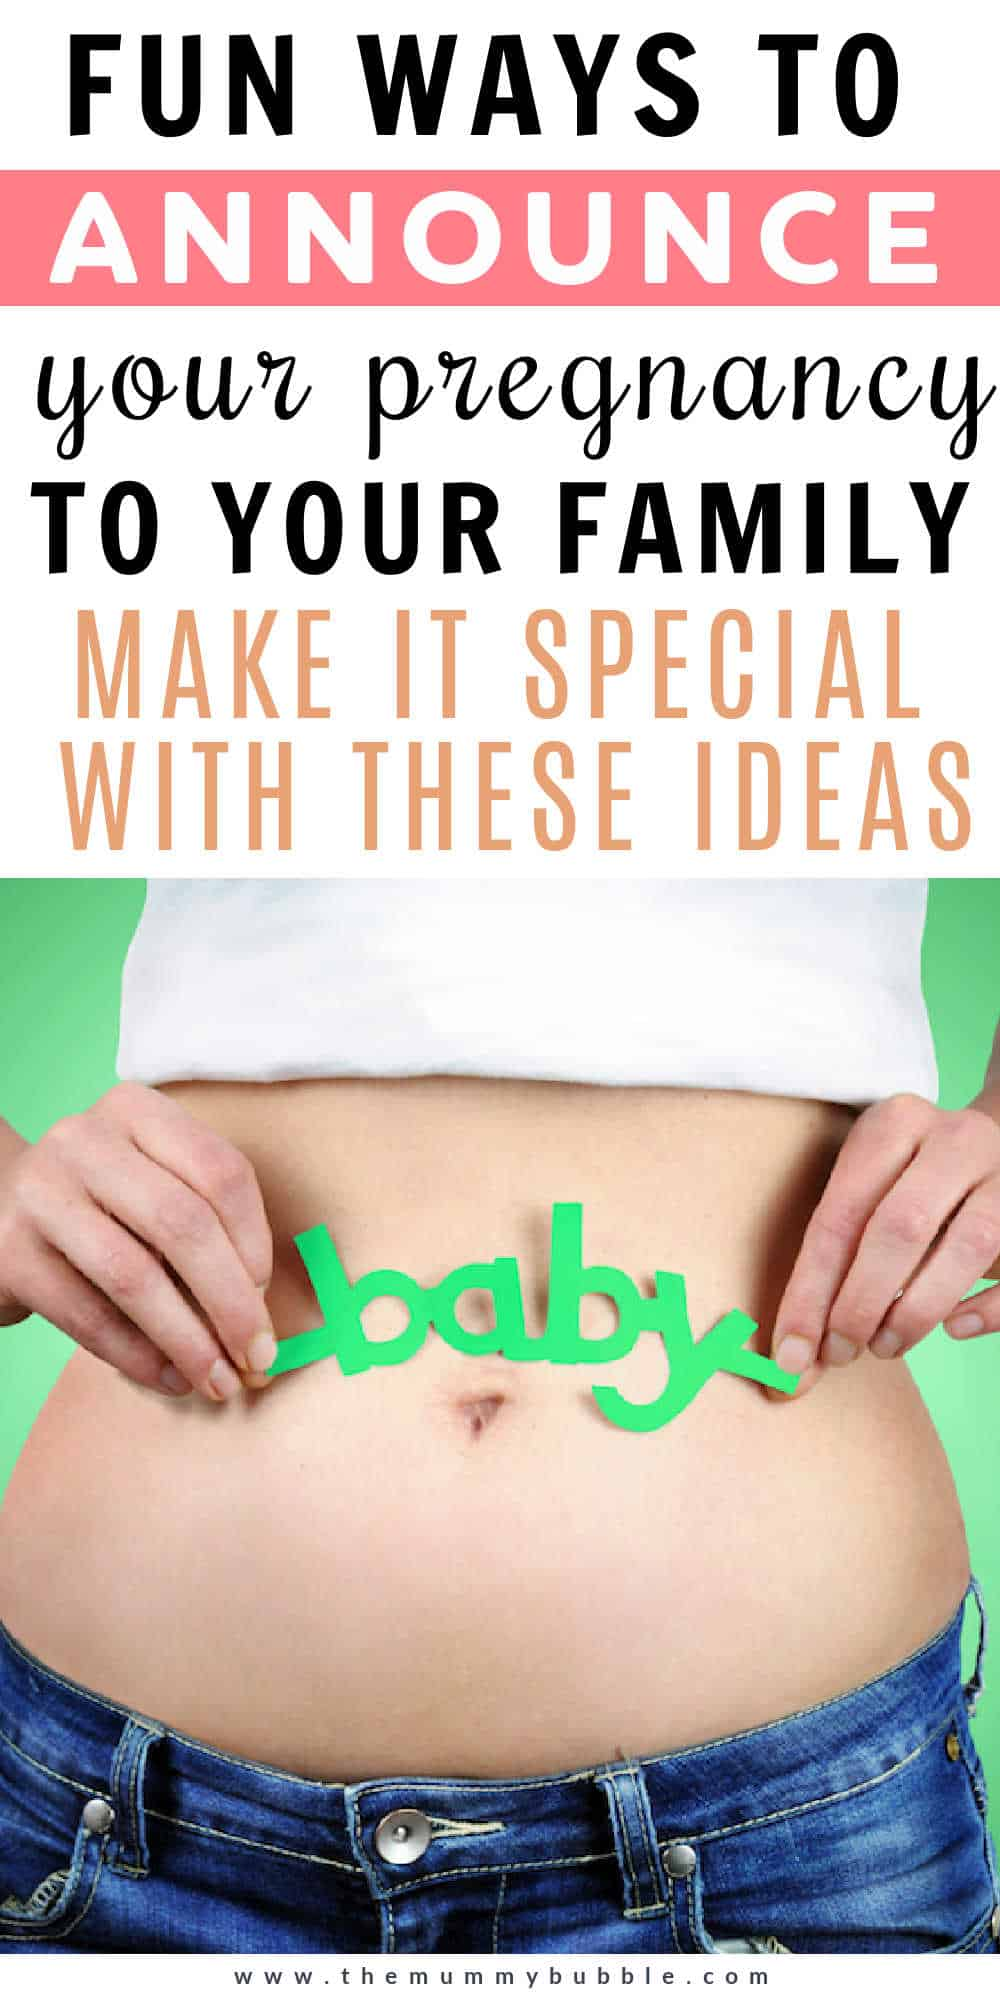 Fun ways to announce your pregnancy to your family